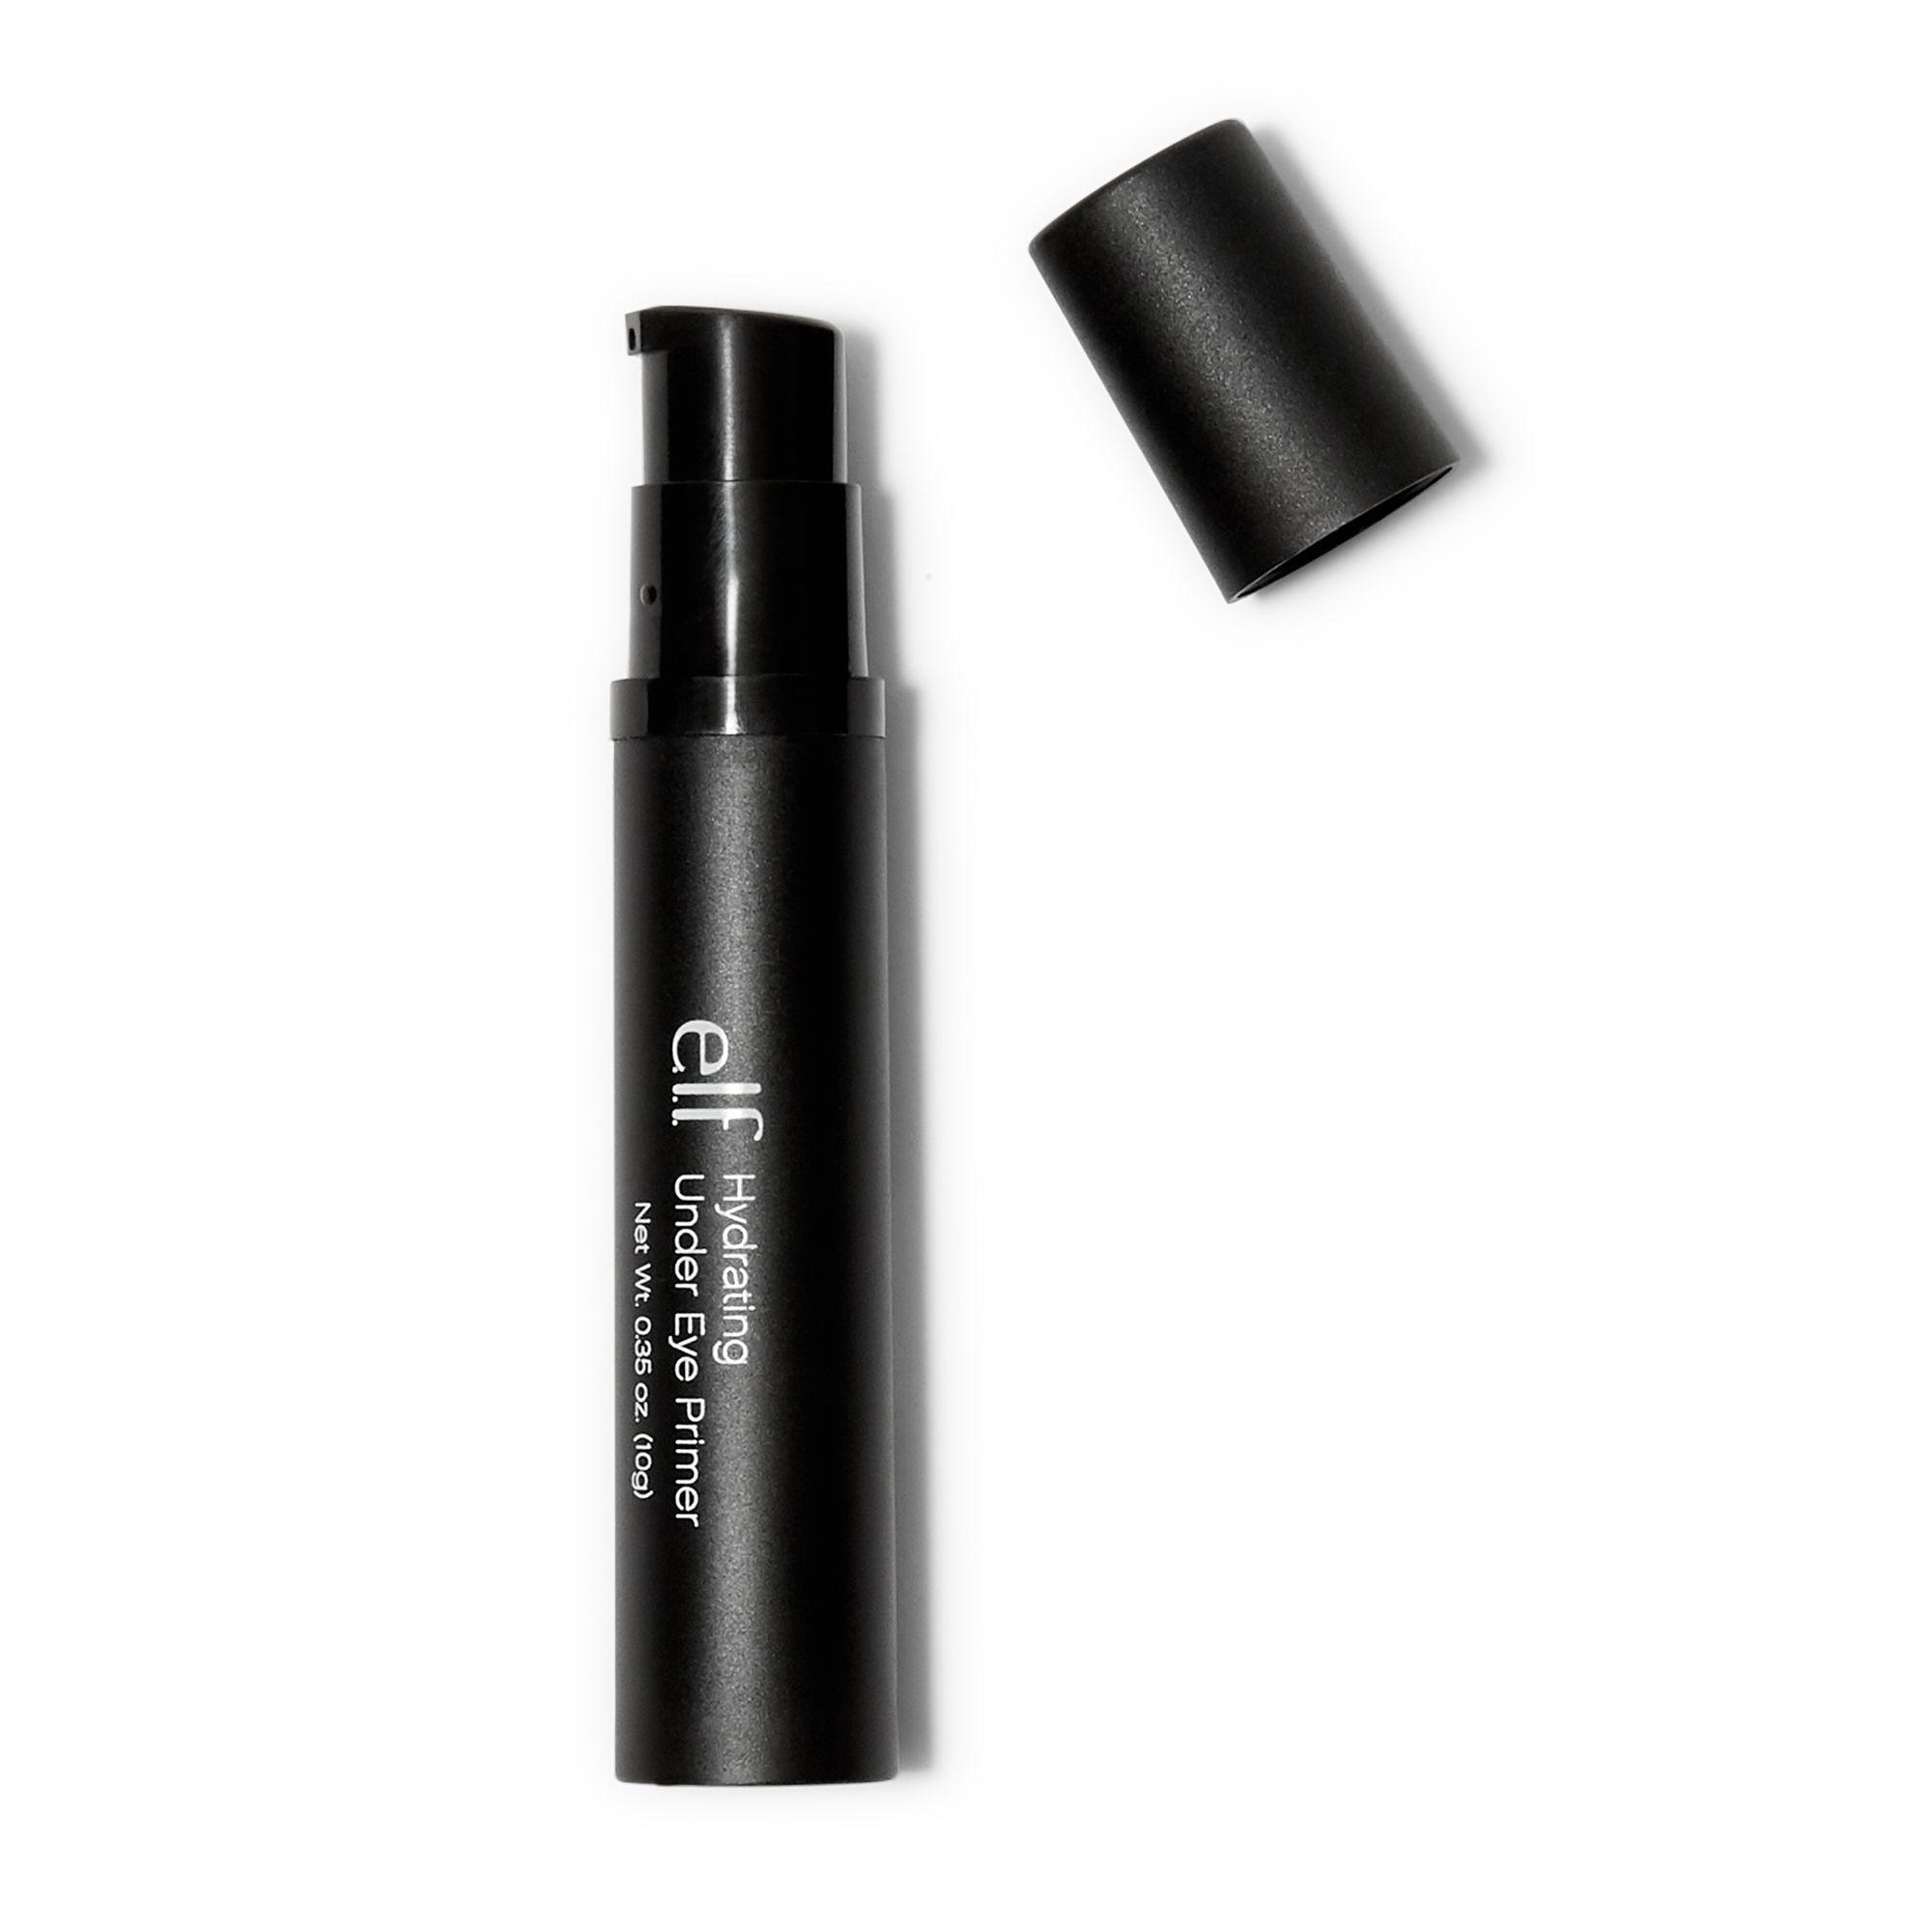 e.l.f. Hydrating Under Eye Primer, 0.35 Ounce Philippines